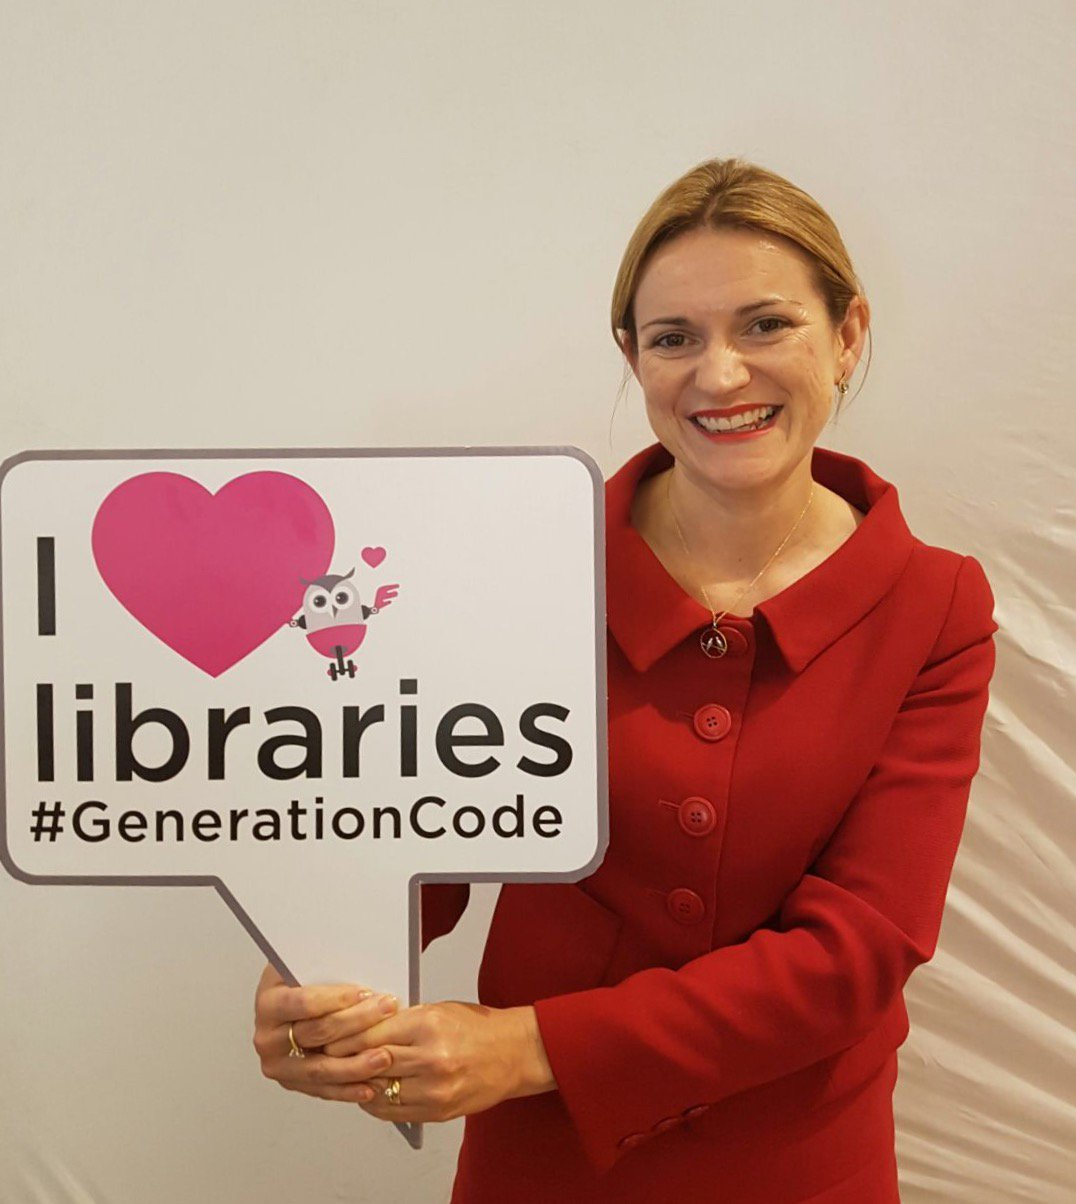 Last night was thrilled to launch MEP Library Lovers Group. If you support libraries join us at https://t.co/4rXjsAikVs @LibrariesEU https://t.co/VIrDzp6Tm9